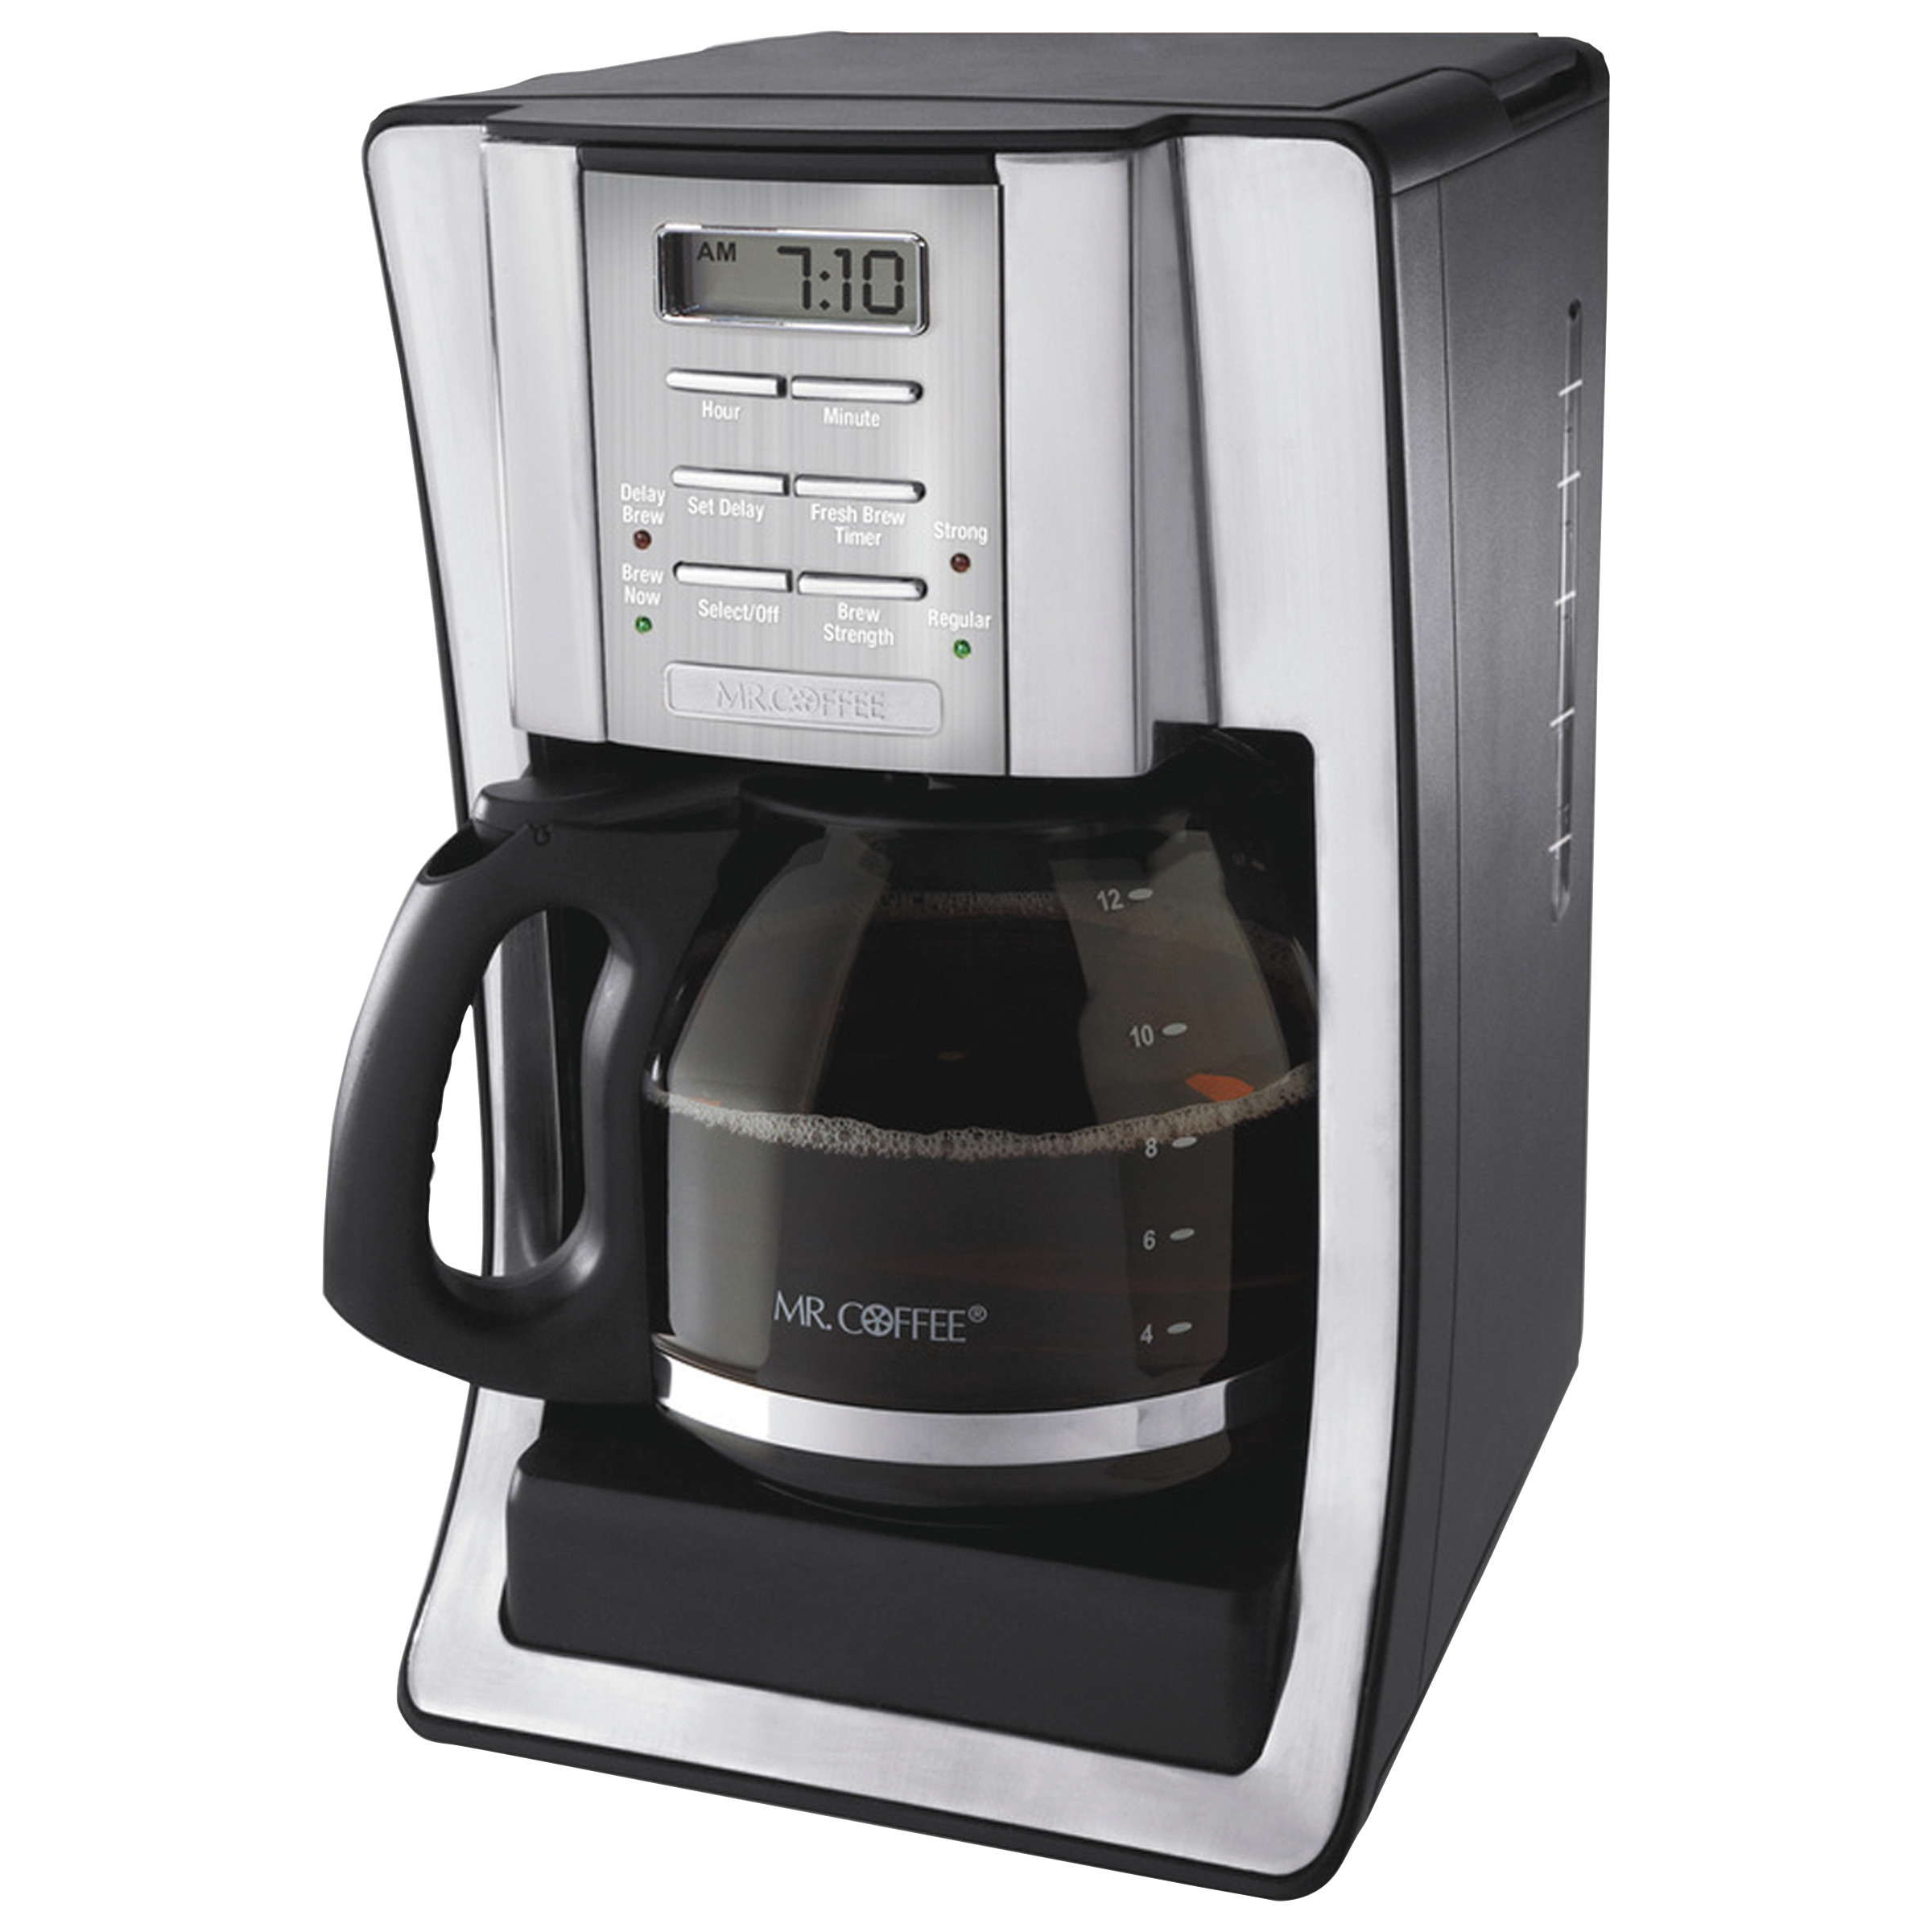 Mr. Coffee 12-Cup Programmable Coffeemaker, Black/Brushed Silver